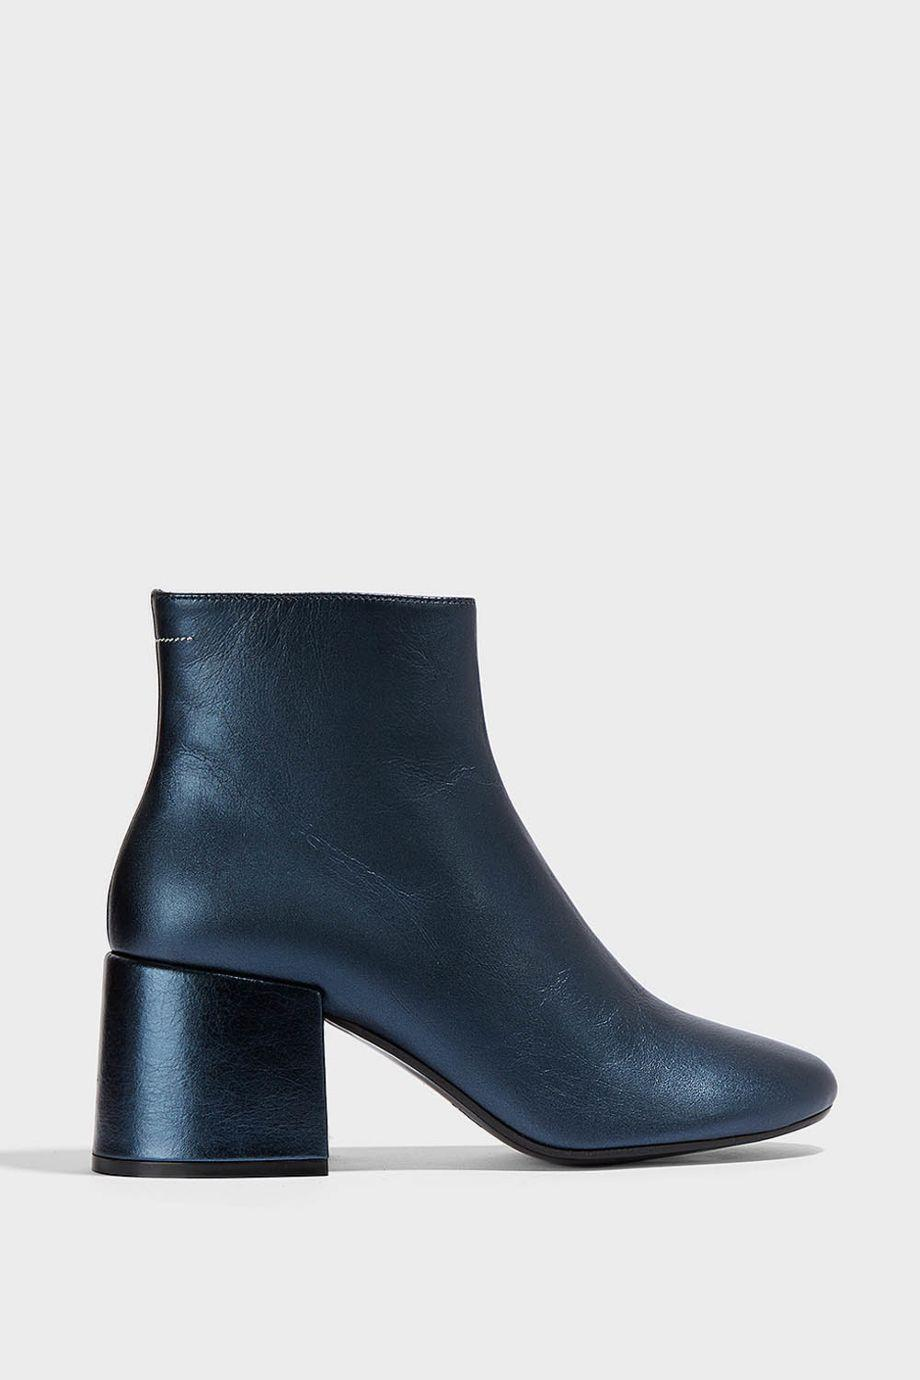 Maison Margiela Leather Ankle Boots In Dark-Blue